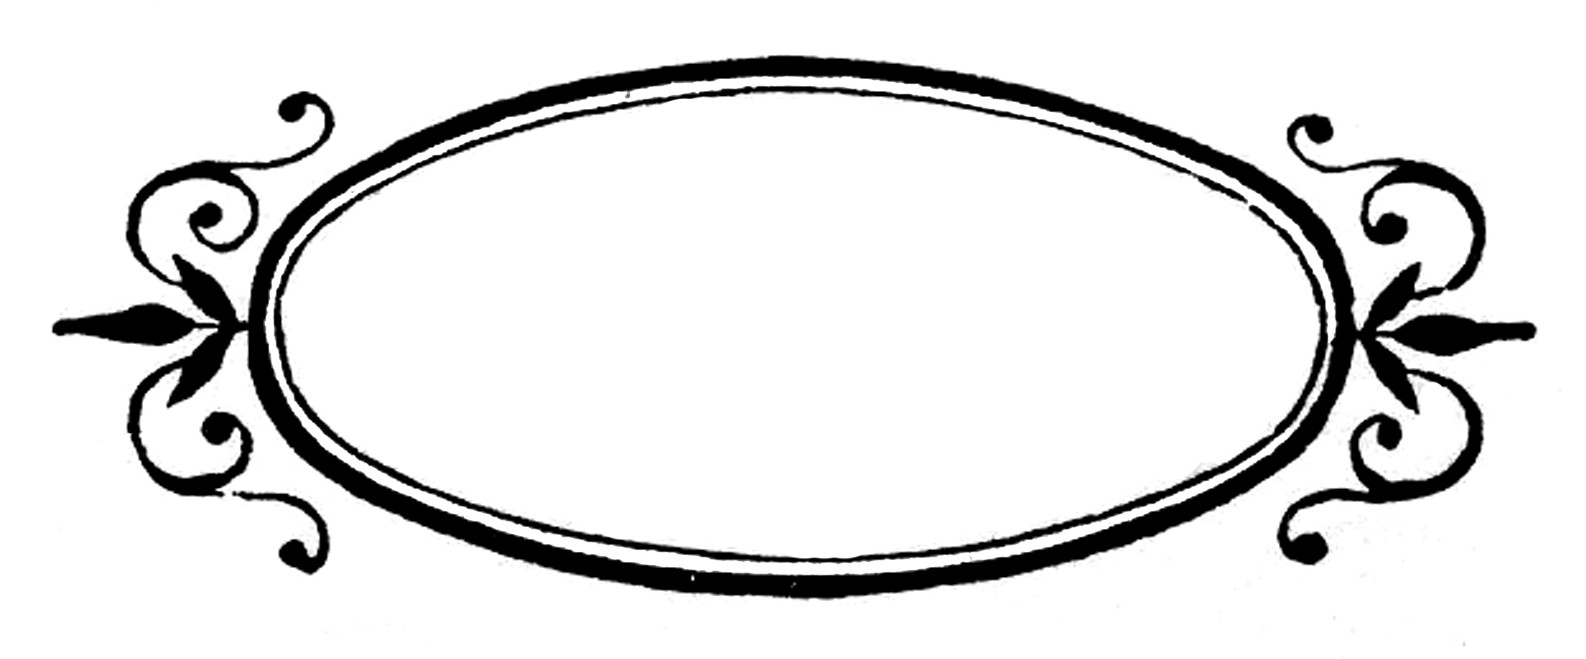 Oval Frame Clip Art - ClipArt Best